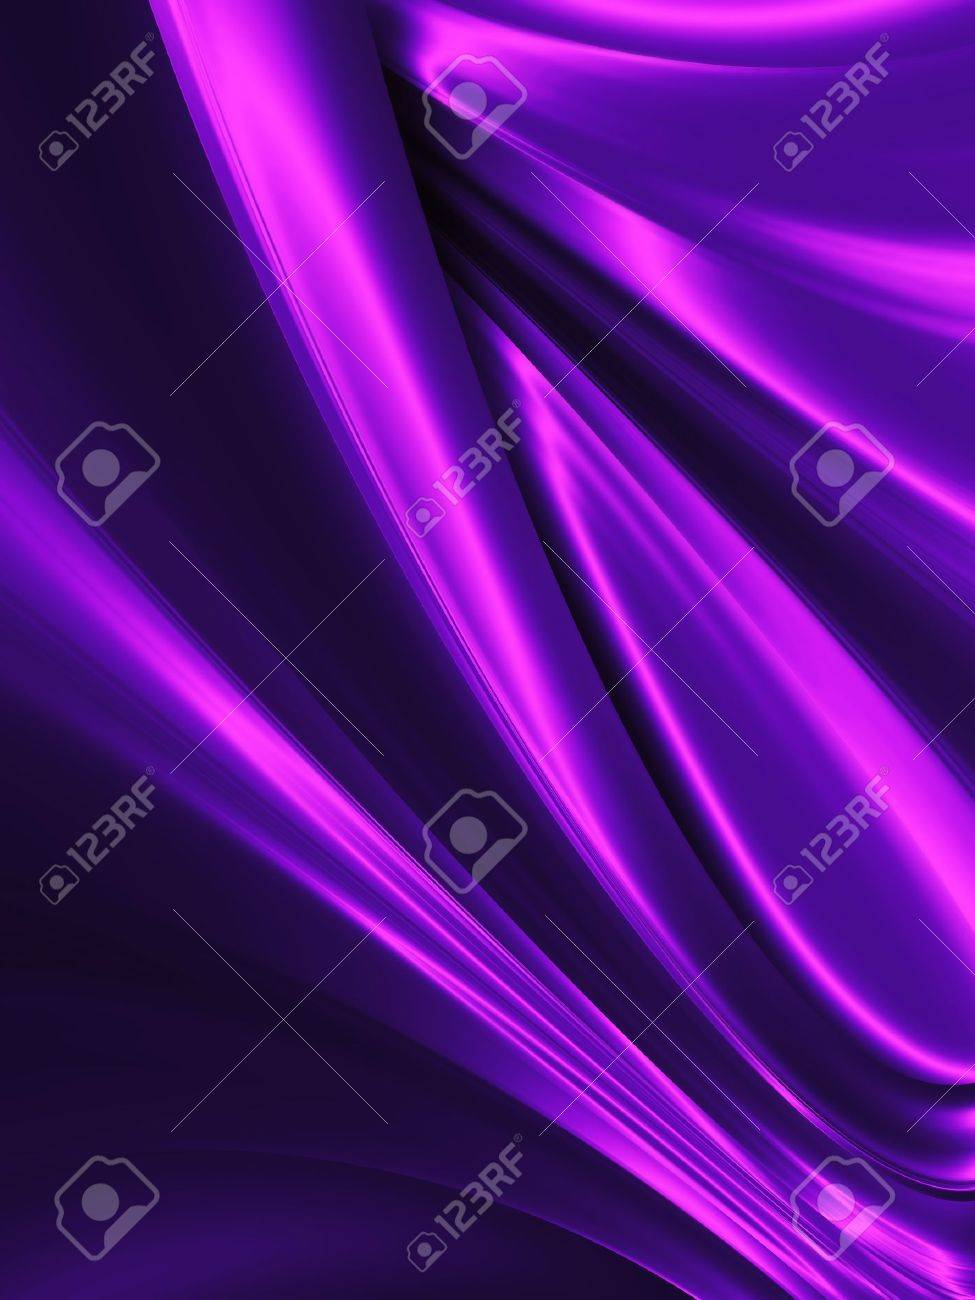 wave of purple silk close up - abstract background - 11976435